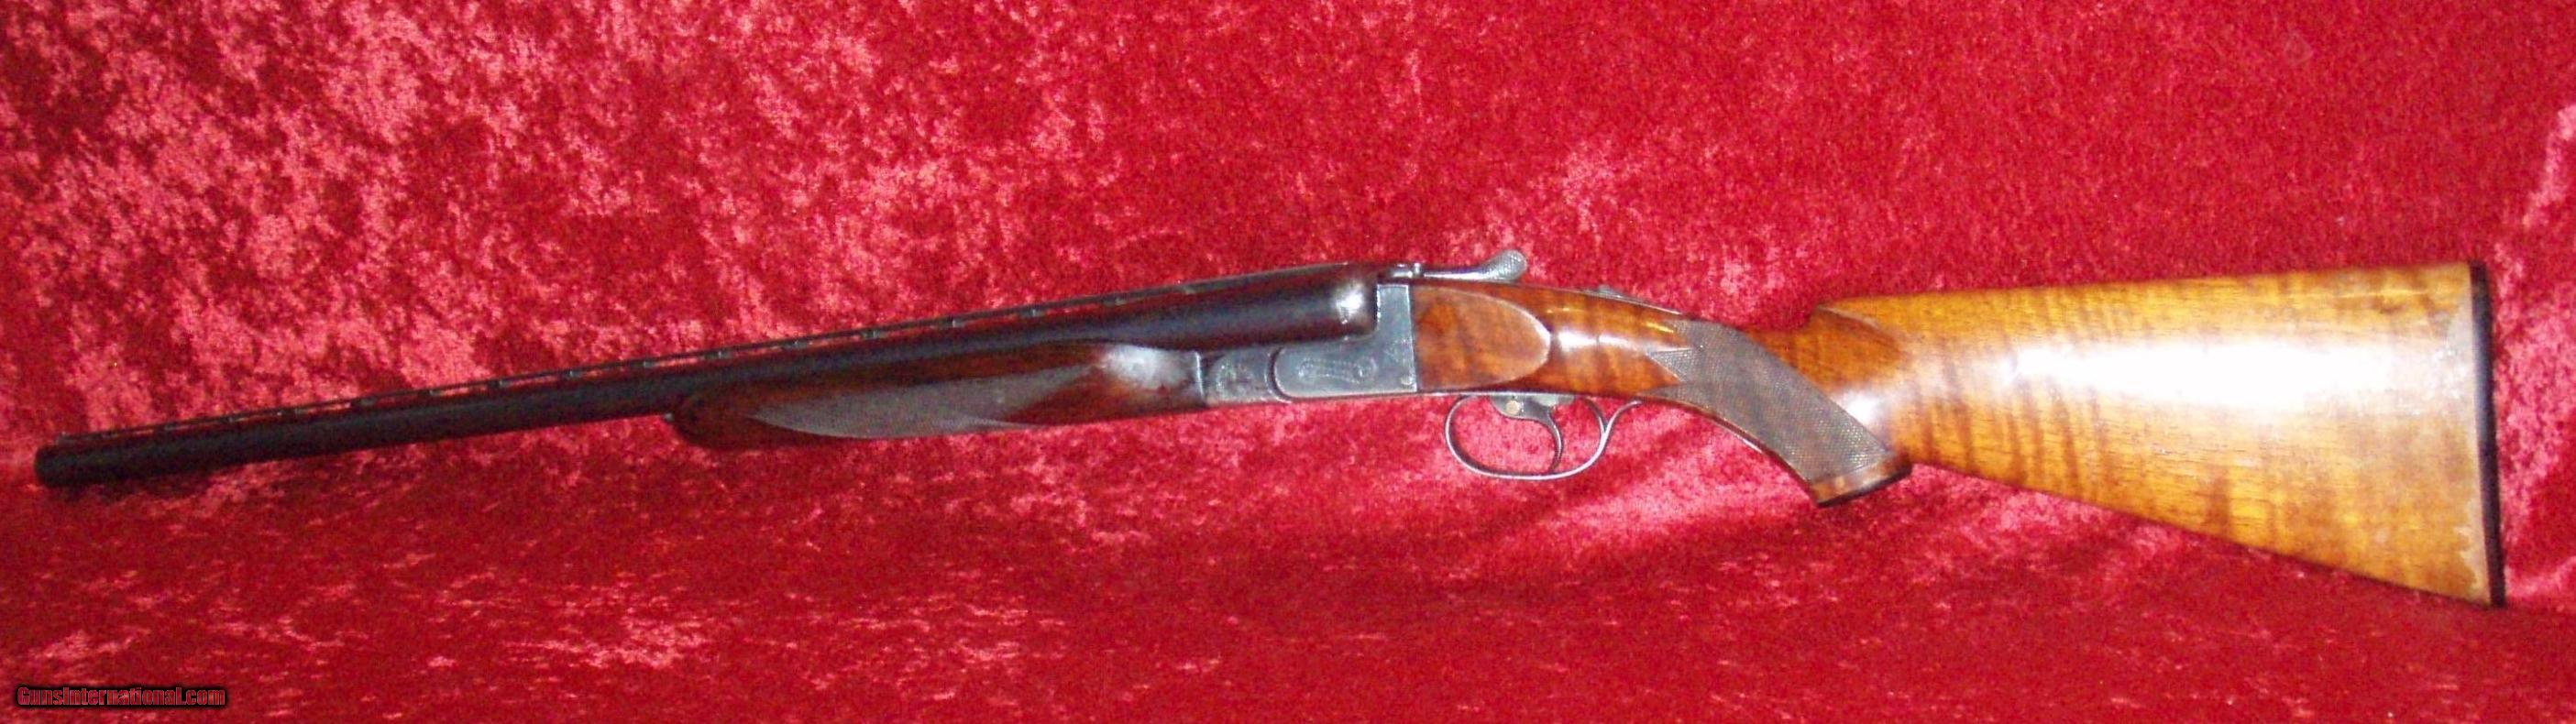 dating spanish shotguns Top-quality old british shotguns can be beautiful, practical and valuable privacy and cookiesjobsdatingoffersshoppuzzlesinvestor subscriberegister log in gun with his spaniel - collecting vintage shotguns collecting:.